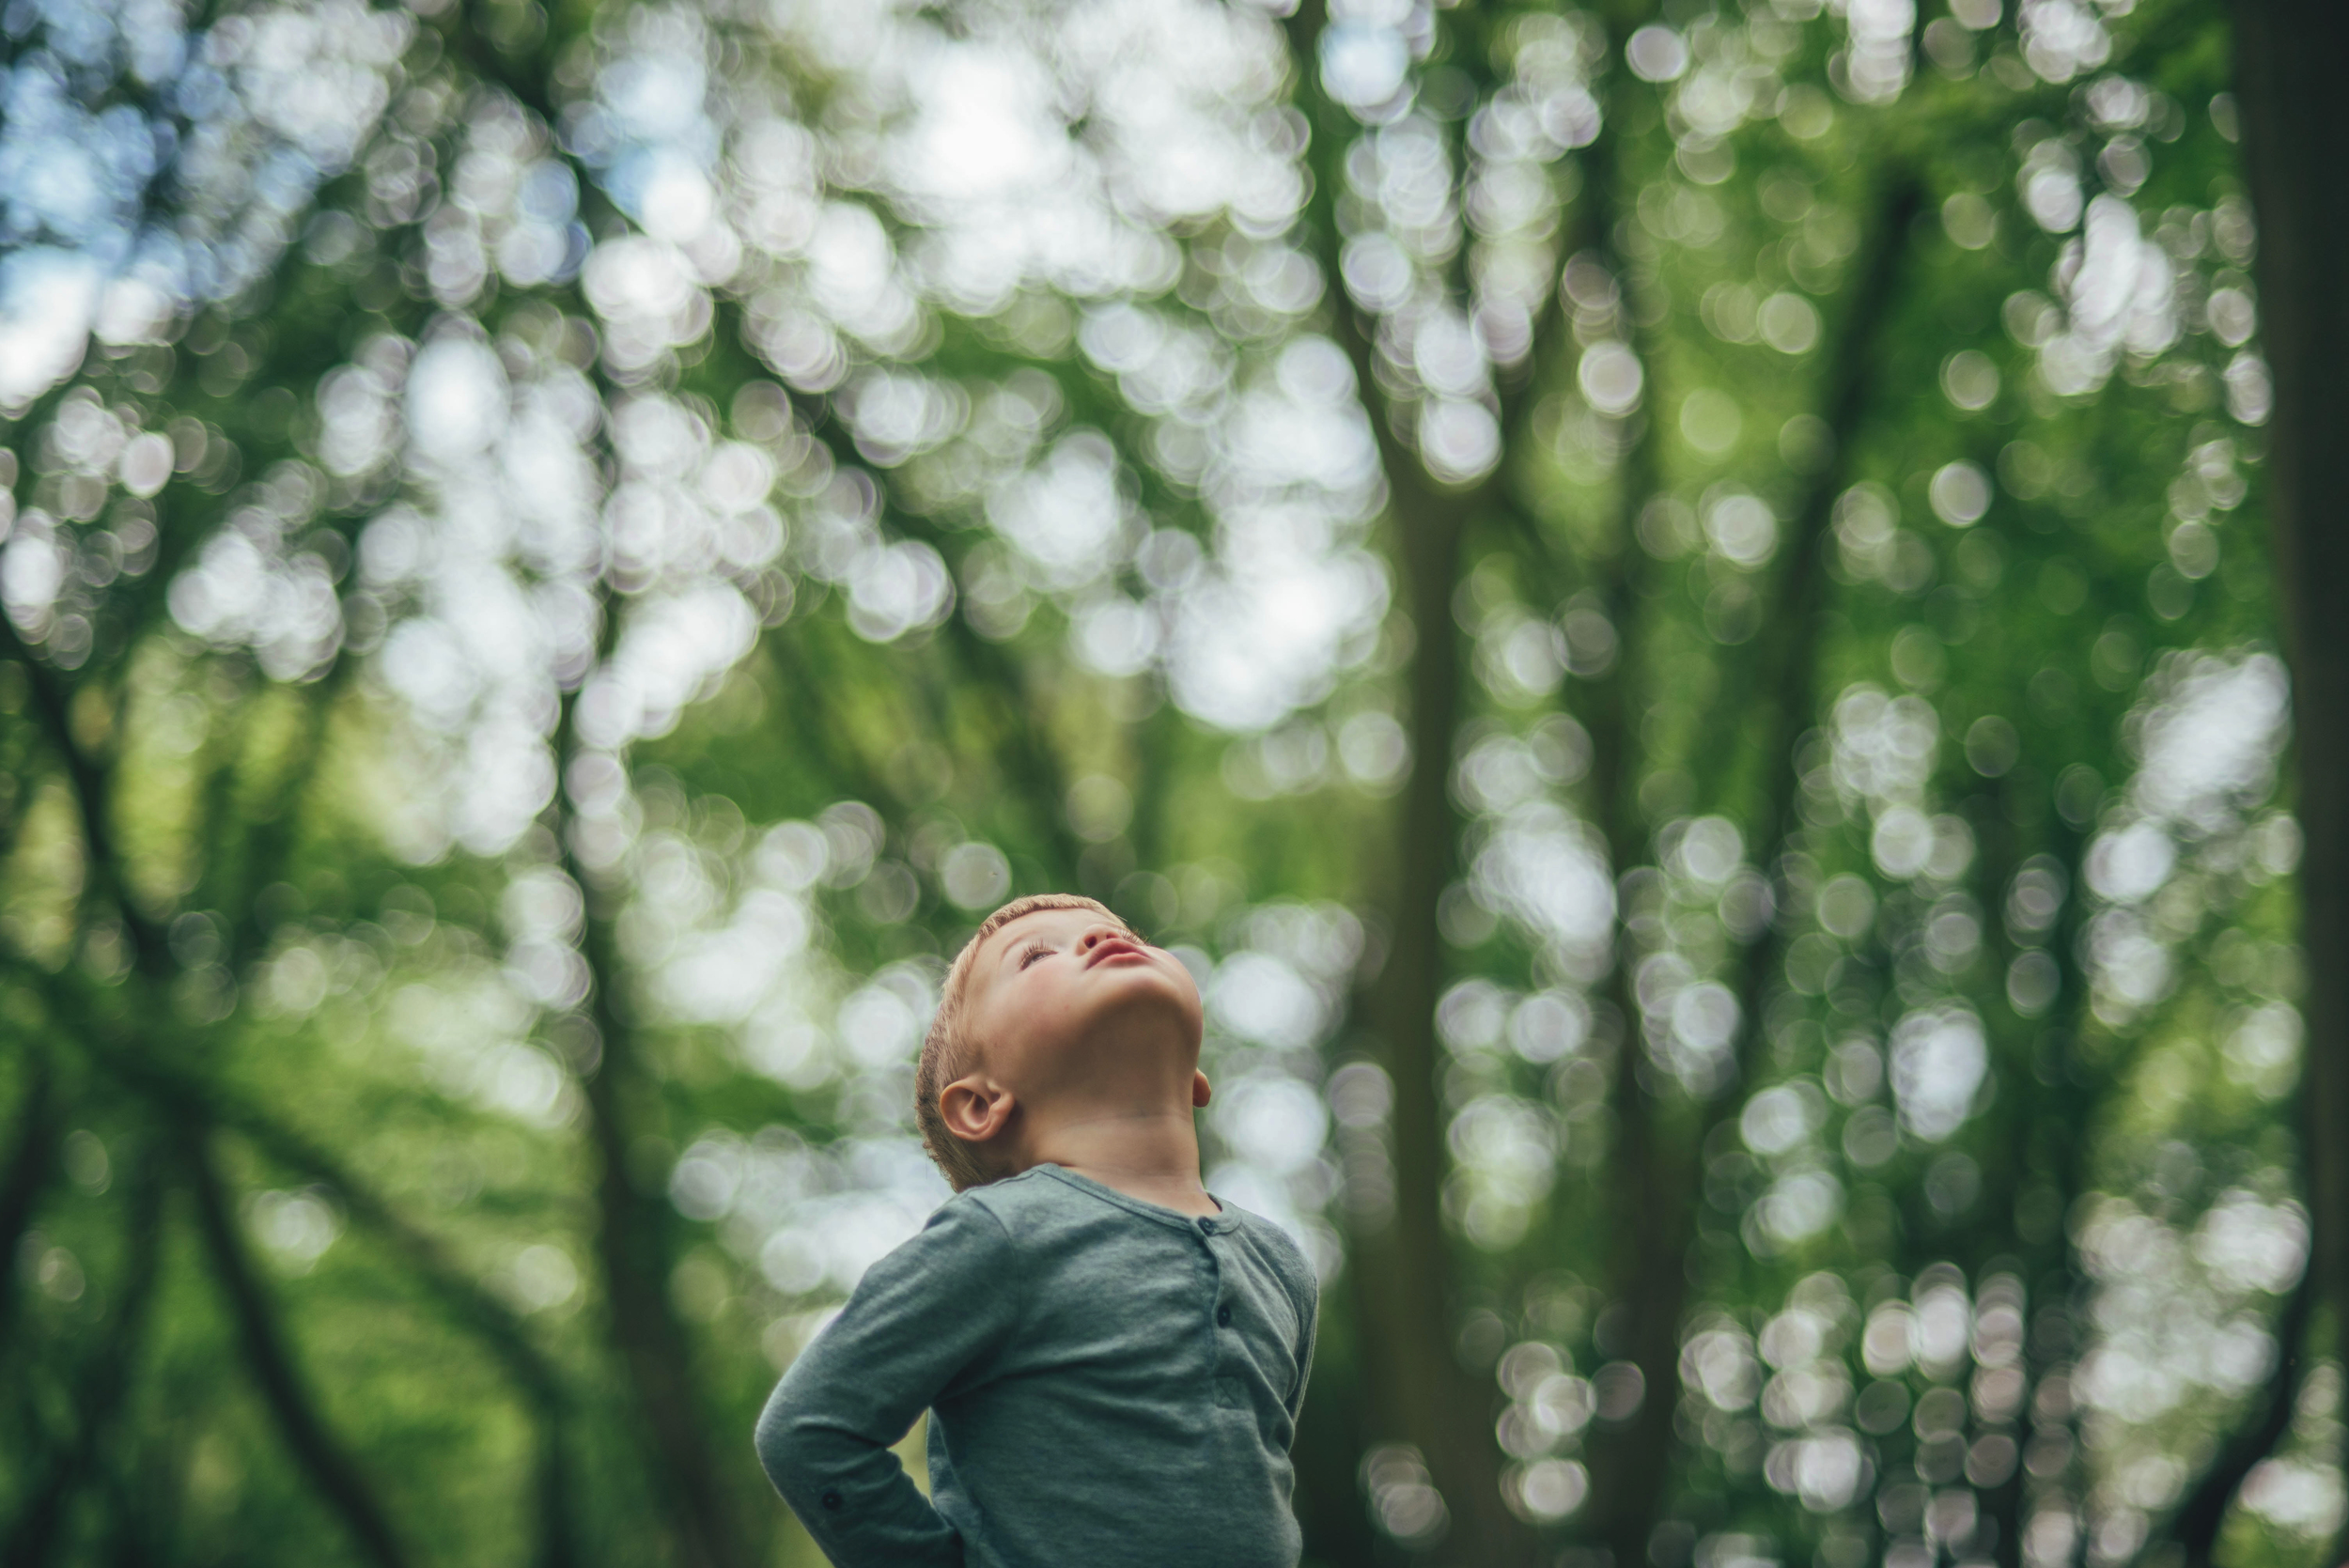 Young boy in woods looks up to the sky Essex Documentary Lifestyle Portrait Photographer